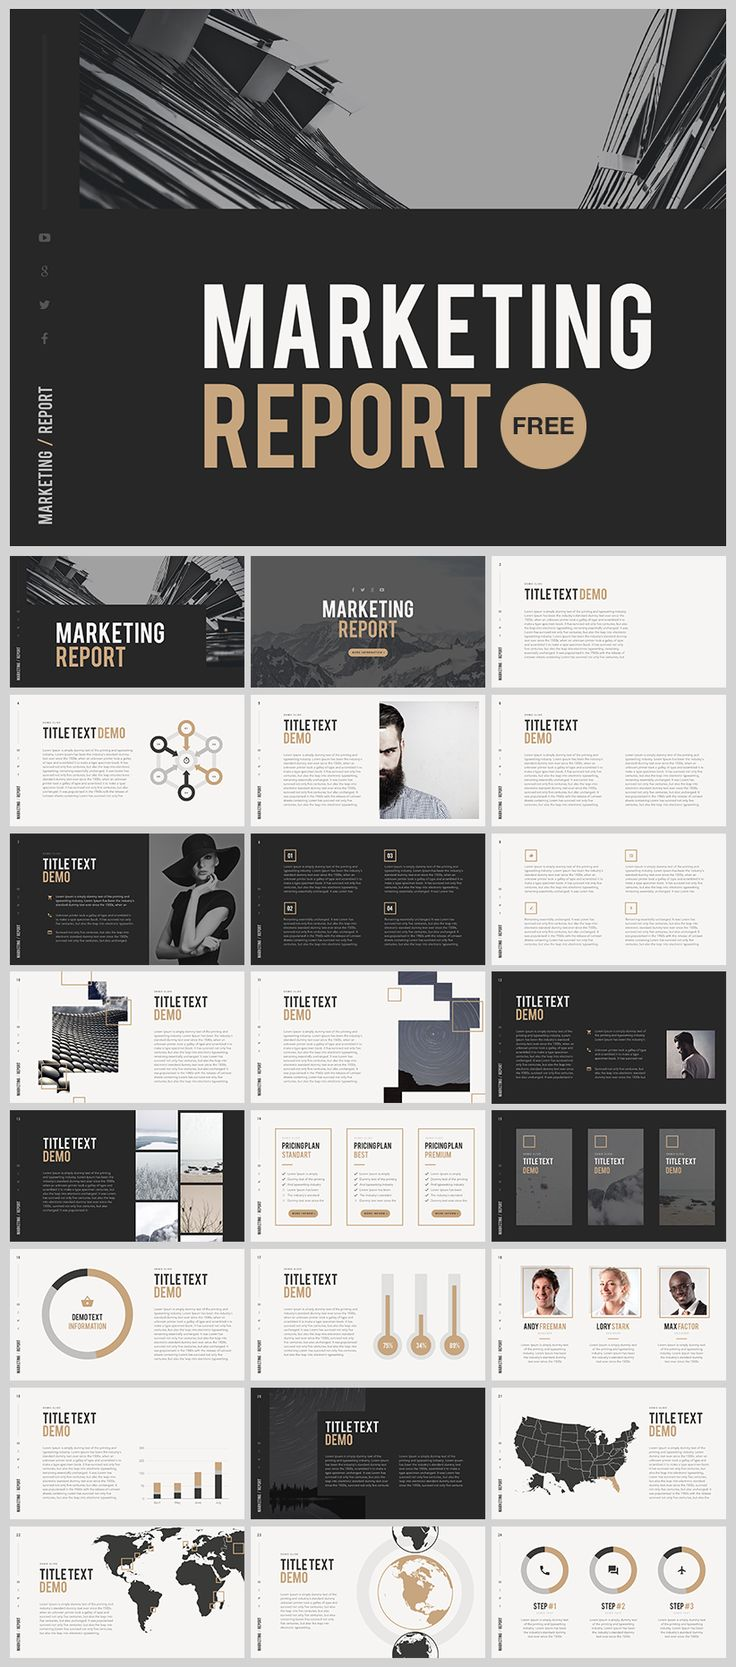 35 best free keynote template images on pinterest free stencils the marketing report free keynote template is designed to help at work more keynote templates for business and marketing toneelgroepblik